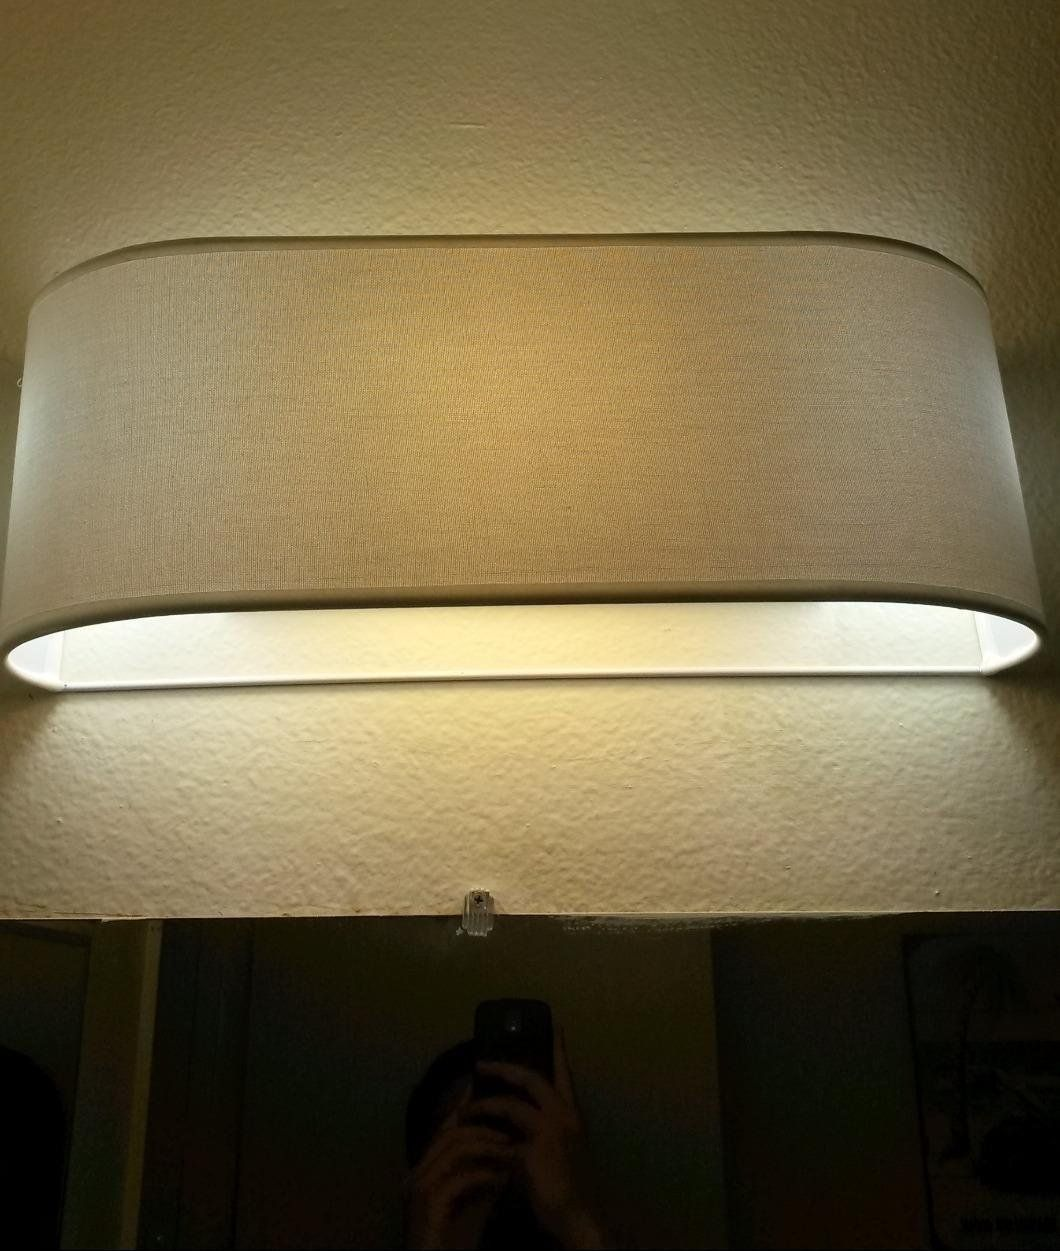 shades for bathroom vanity lights. Catalina x White Linen Fabric Bathroom Vanity Light Refresh Kit  Fits Over a 3 light Hollywood Style Fixture Cover for hideous bathroom strip lights 20 7 in 21